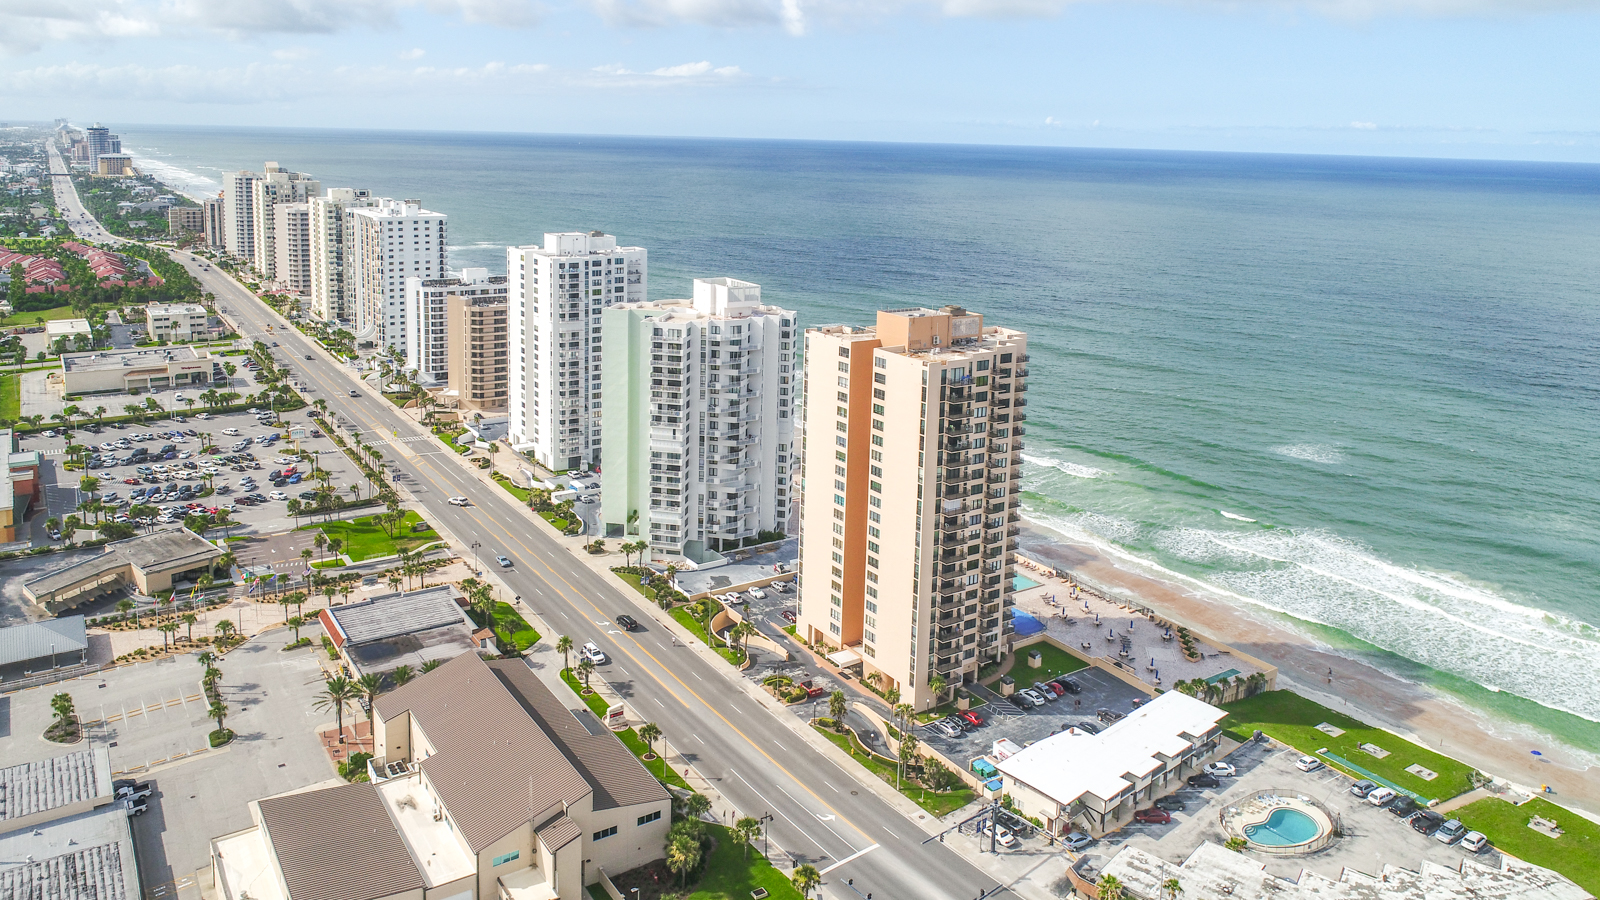 Daytona Condo Market Conditions in 2019